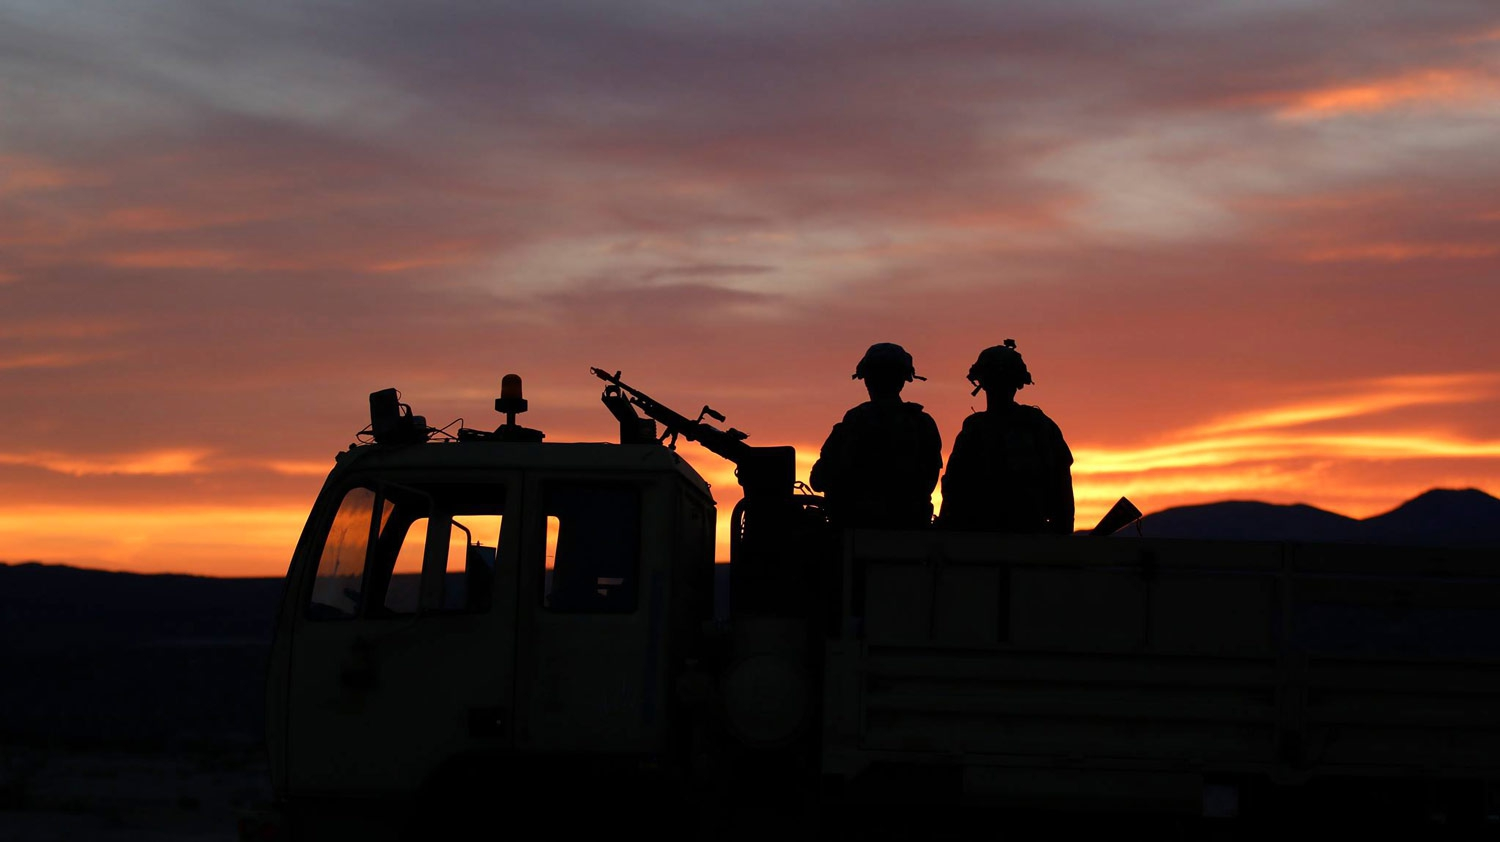 SGT Seamus Redmond and SPC Joseph Page, members of Task Force Ragnar, stand guard during a rotation at the National Training Center in Fort Irwin, California, May 8, 2018. Led by the Minnesota Army National Guard, Task Force Ragnar is made up by Soldiers from Utah-based B Company, 1st Battalion, 211th Assault Reconnaissance Battalion; Nevada-based B Company, 1-189th General Support Aviation Battalion; Michigan-based C Company, 3-238th GSAB; and Minnesota-based A, D, E and Headquarters Companies, 2-147th AHB and F Company, 1-189th GSAB. Minnesota Army National Guard photo by CPT Katherine Zins